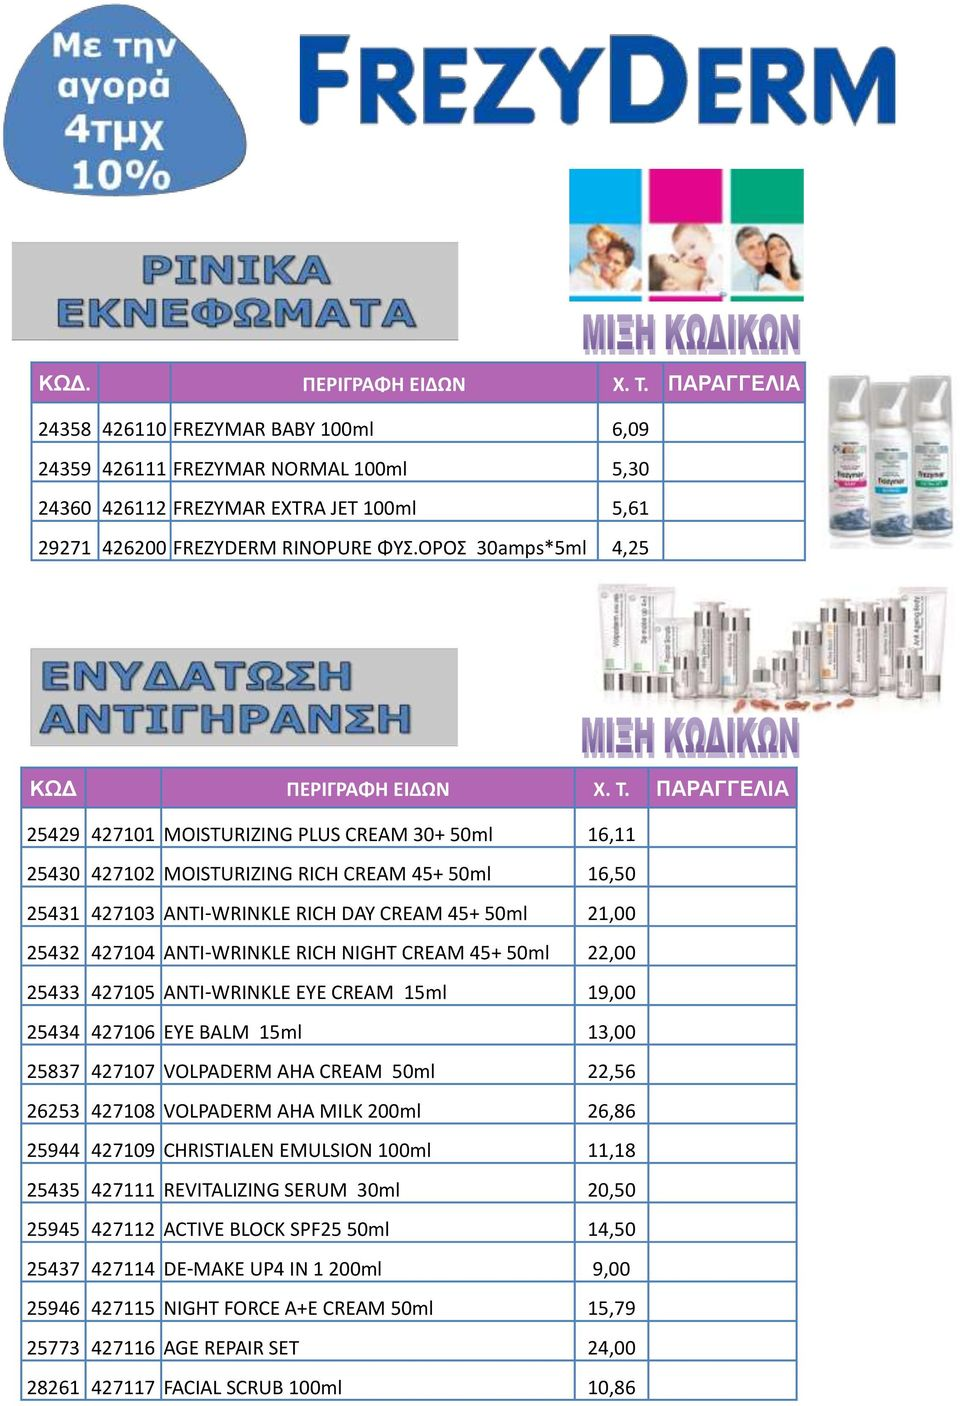 ΠΑΡΑΓΓΕΛΙΑ 25429 427101 MOISTURIZING PLUS CREAM 30+ 50ml 16,11 25430 427102 MOISTURIZING RICH CREAM 45+ 50ml 16,50 25431 427103 ANTI-WRINKLE RICH DAY CREAM 45+ 50ml 21,00 25432 427104 ANTI-WRINKLE